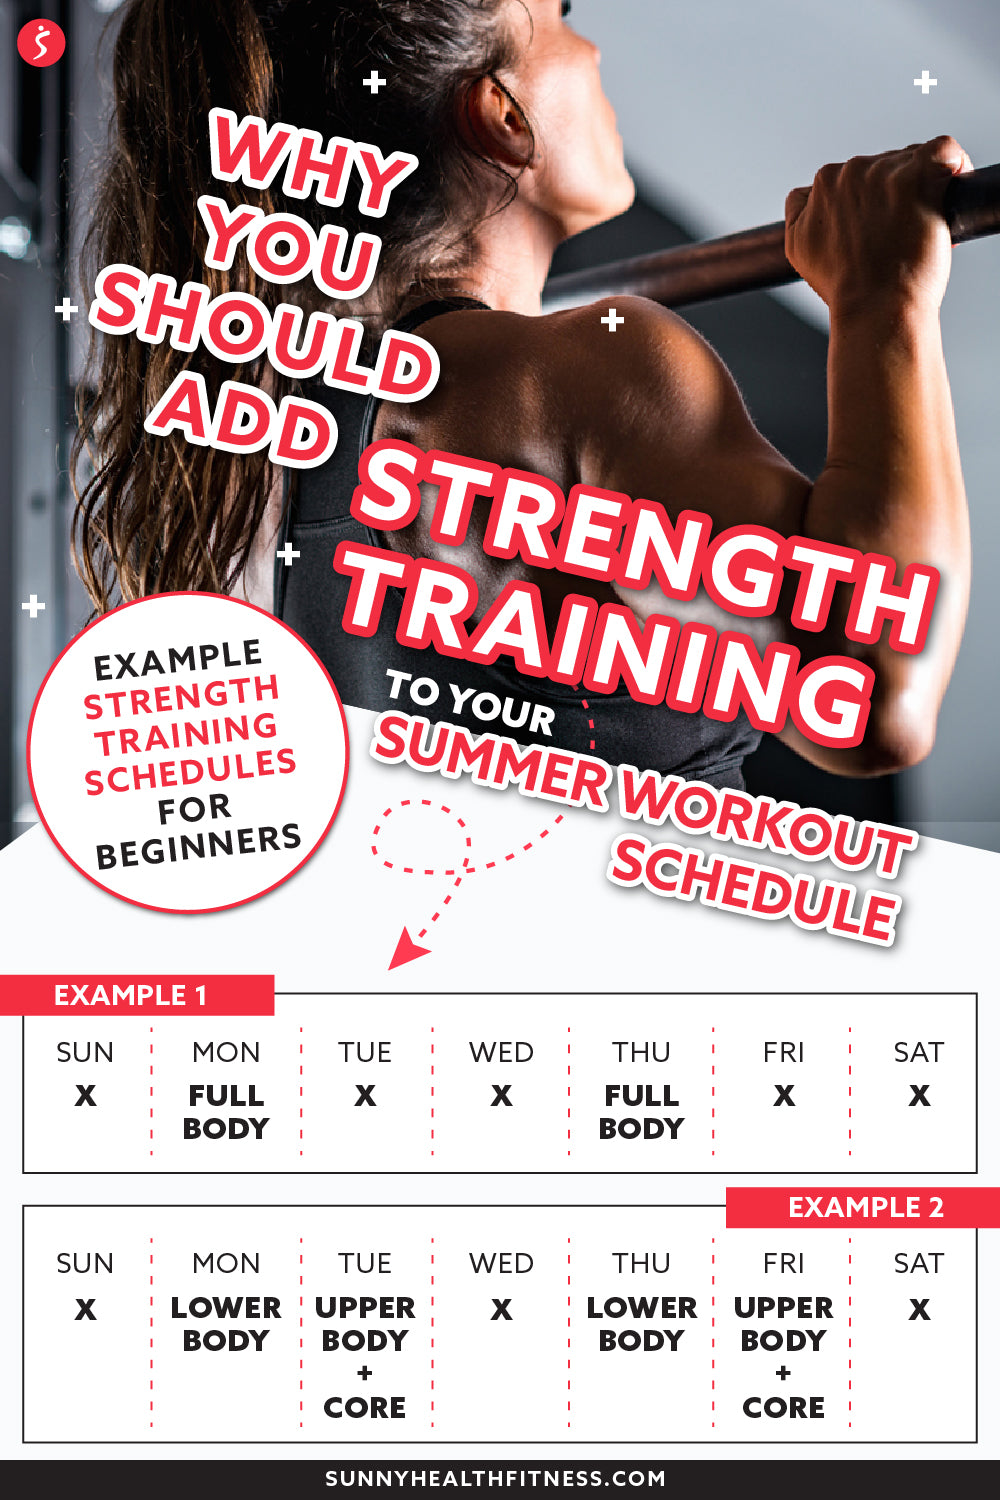 How to Schedule Strength Training Into Your Summer Workout